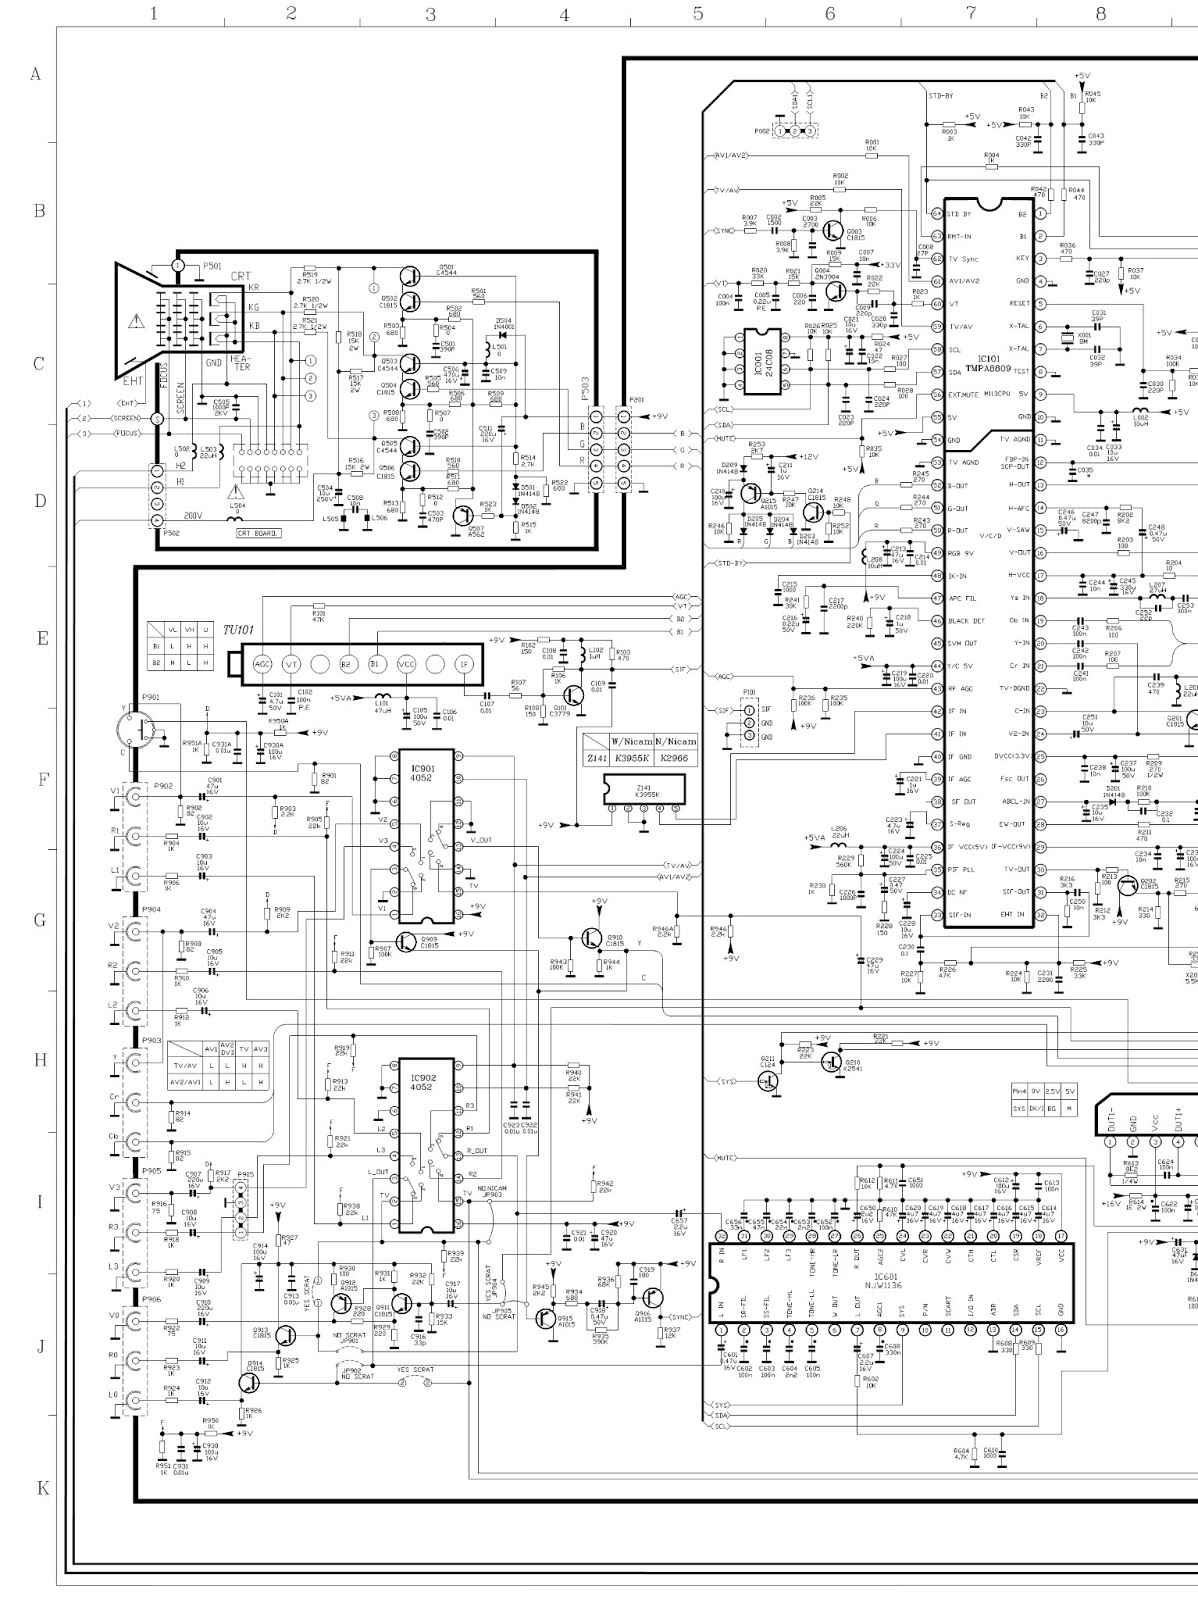 Circuit Board Labeled Diagram Of A Toshiba Tv Control Wiring Diagrams Crt Schematic Samsung